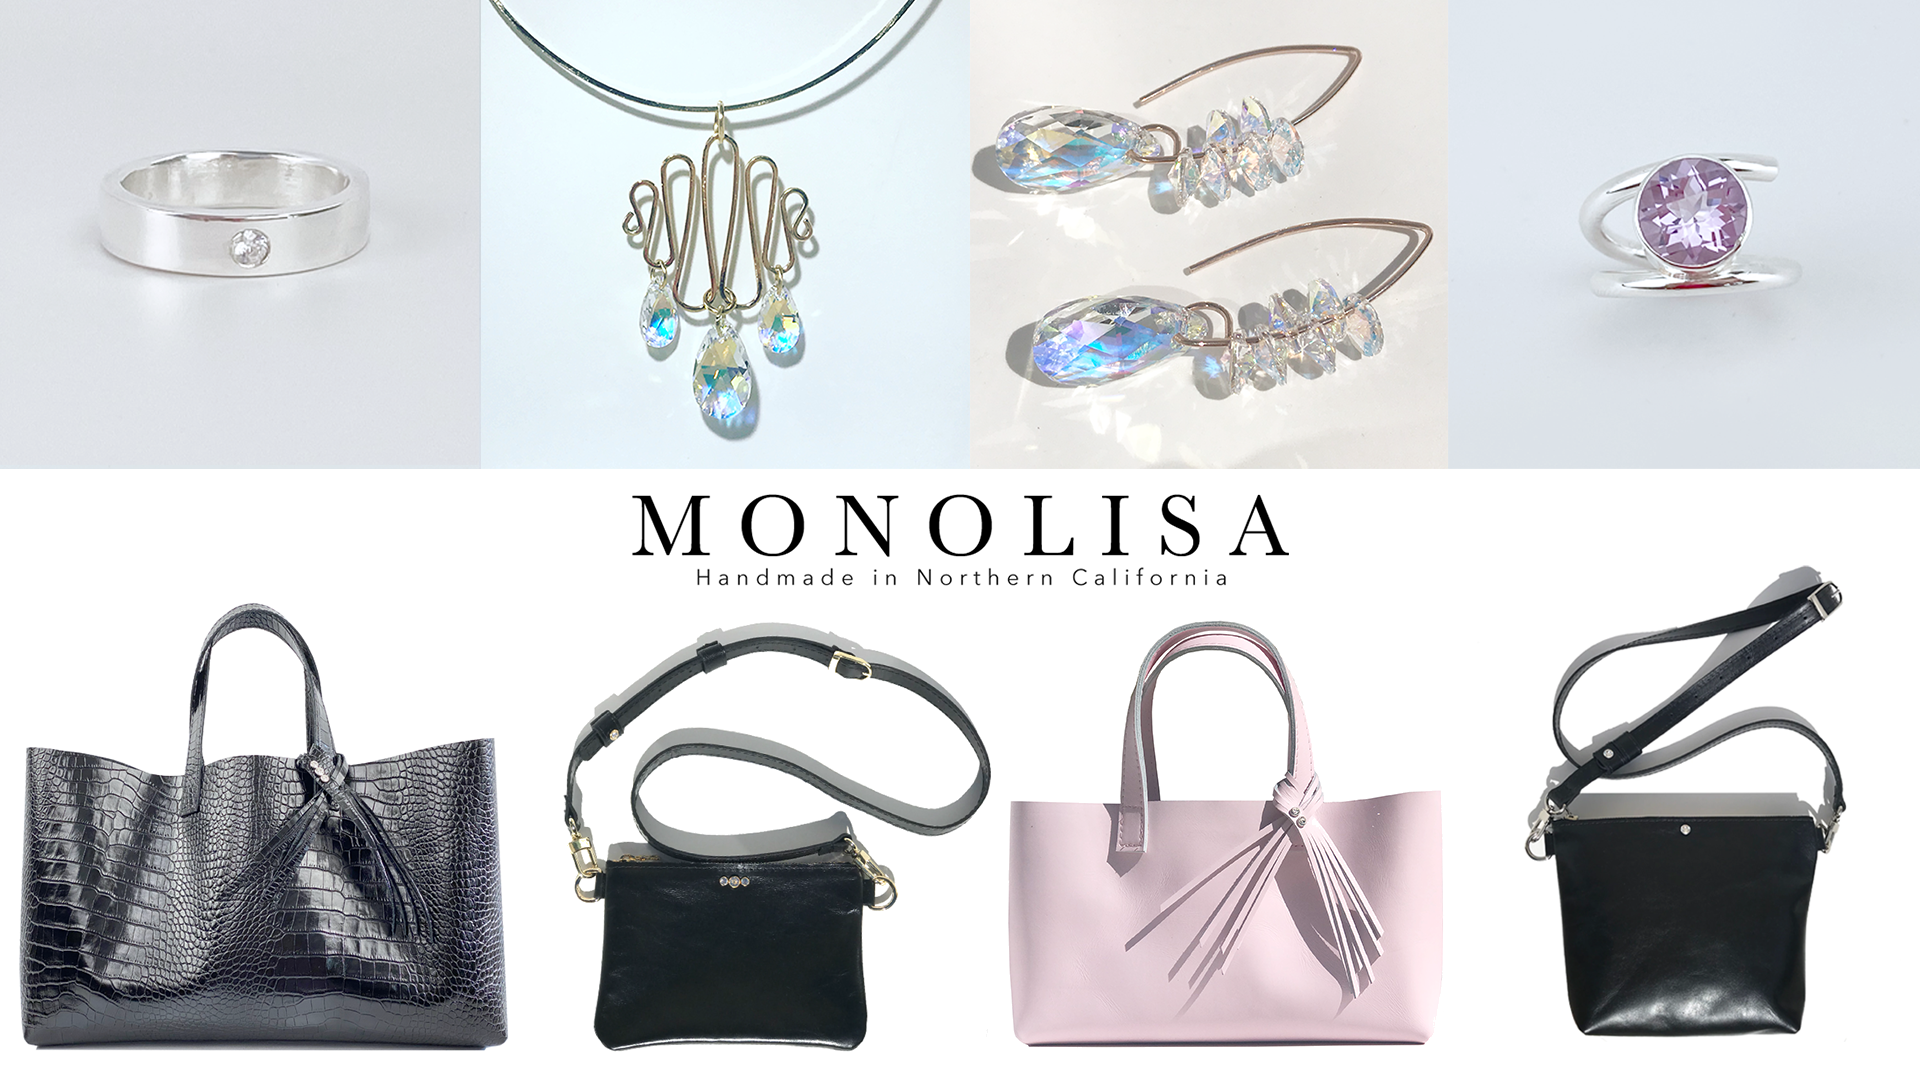 Hillsborough Auxiliary to Peninsula Family Service Annual Thanks for Giving Event - SHOP MONOLISA Collection - Handmade Bags & Jewelry